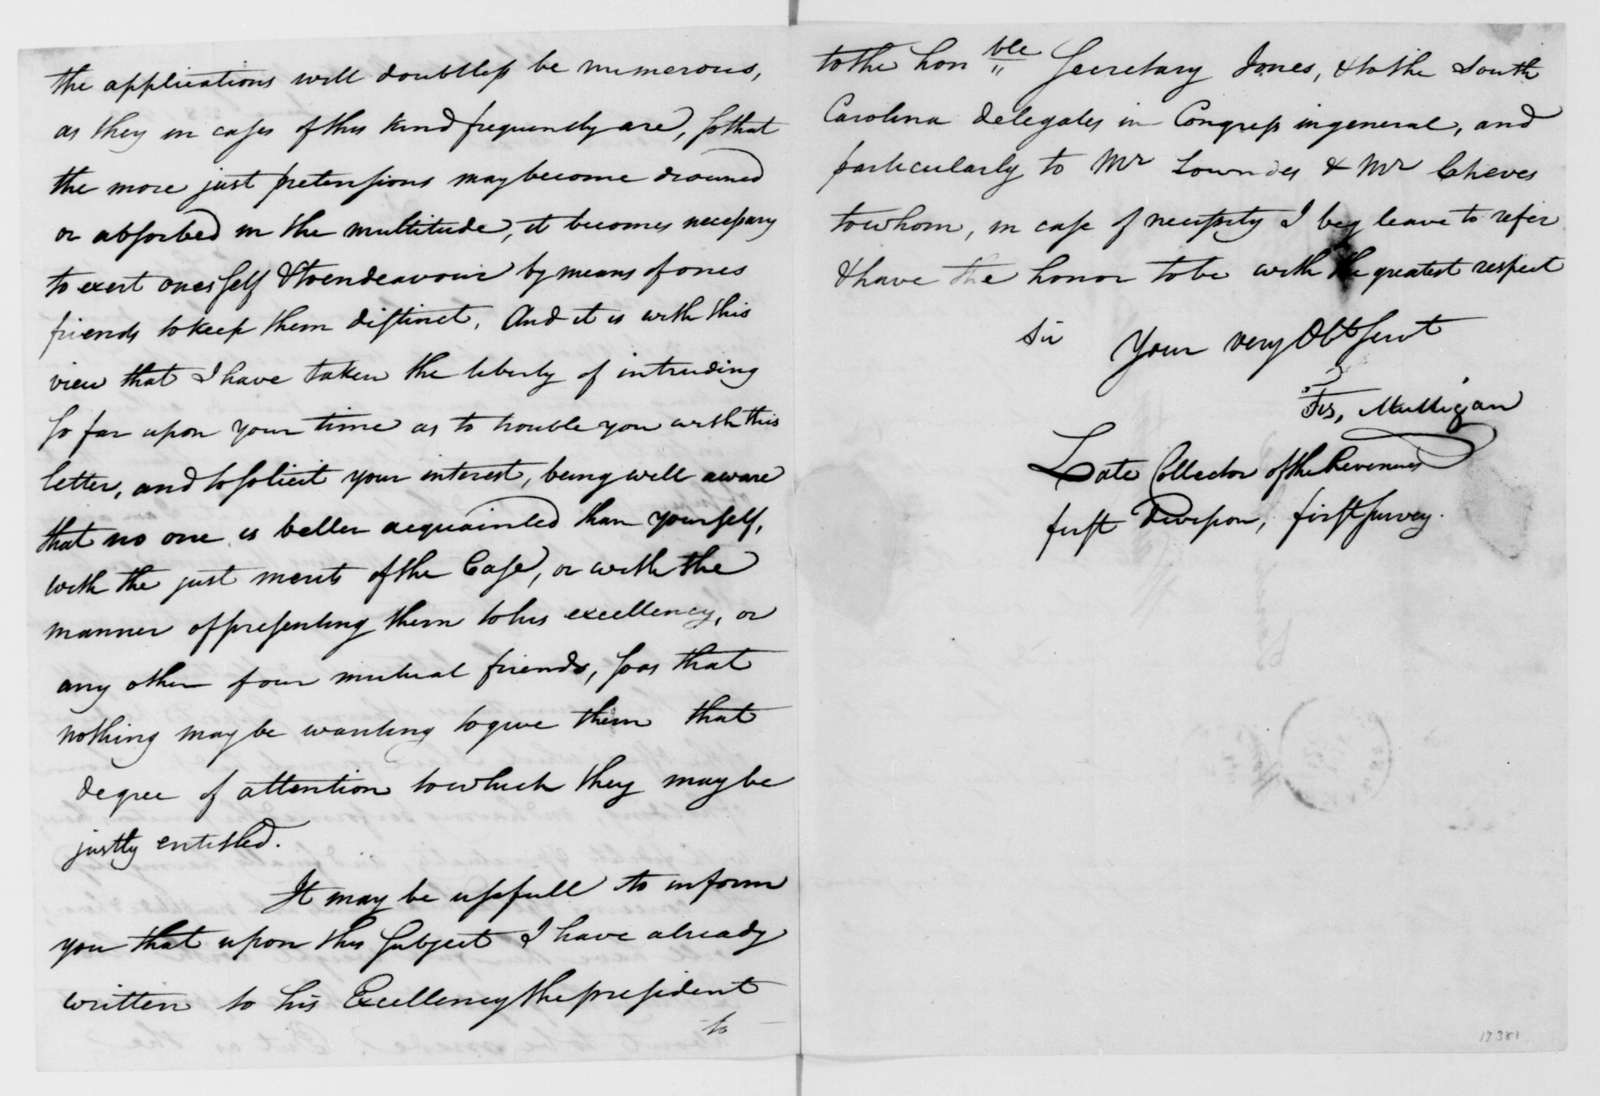 F. Mulligan to Tench Coxe, June 28, 1813.